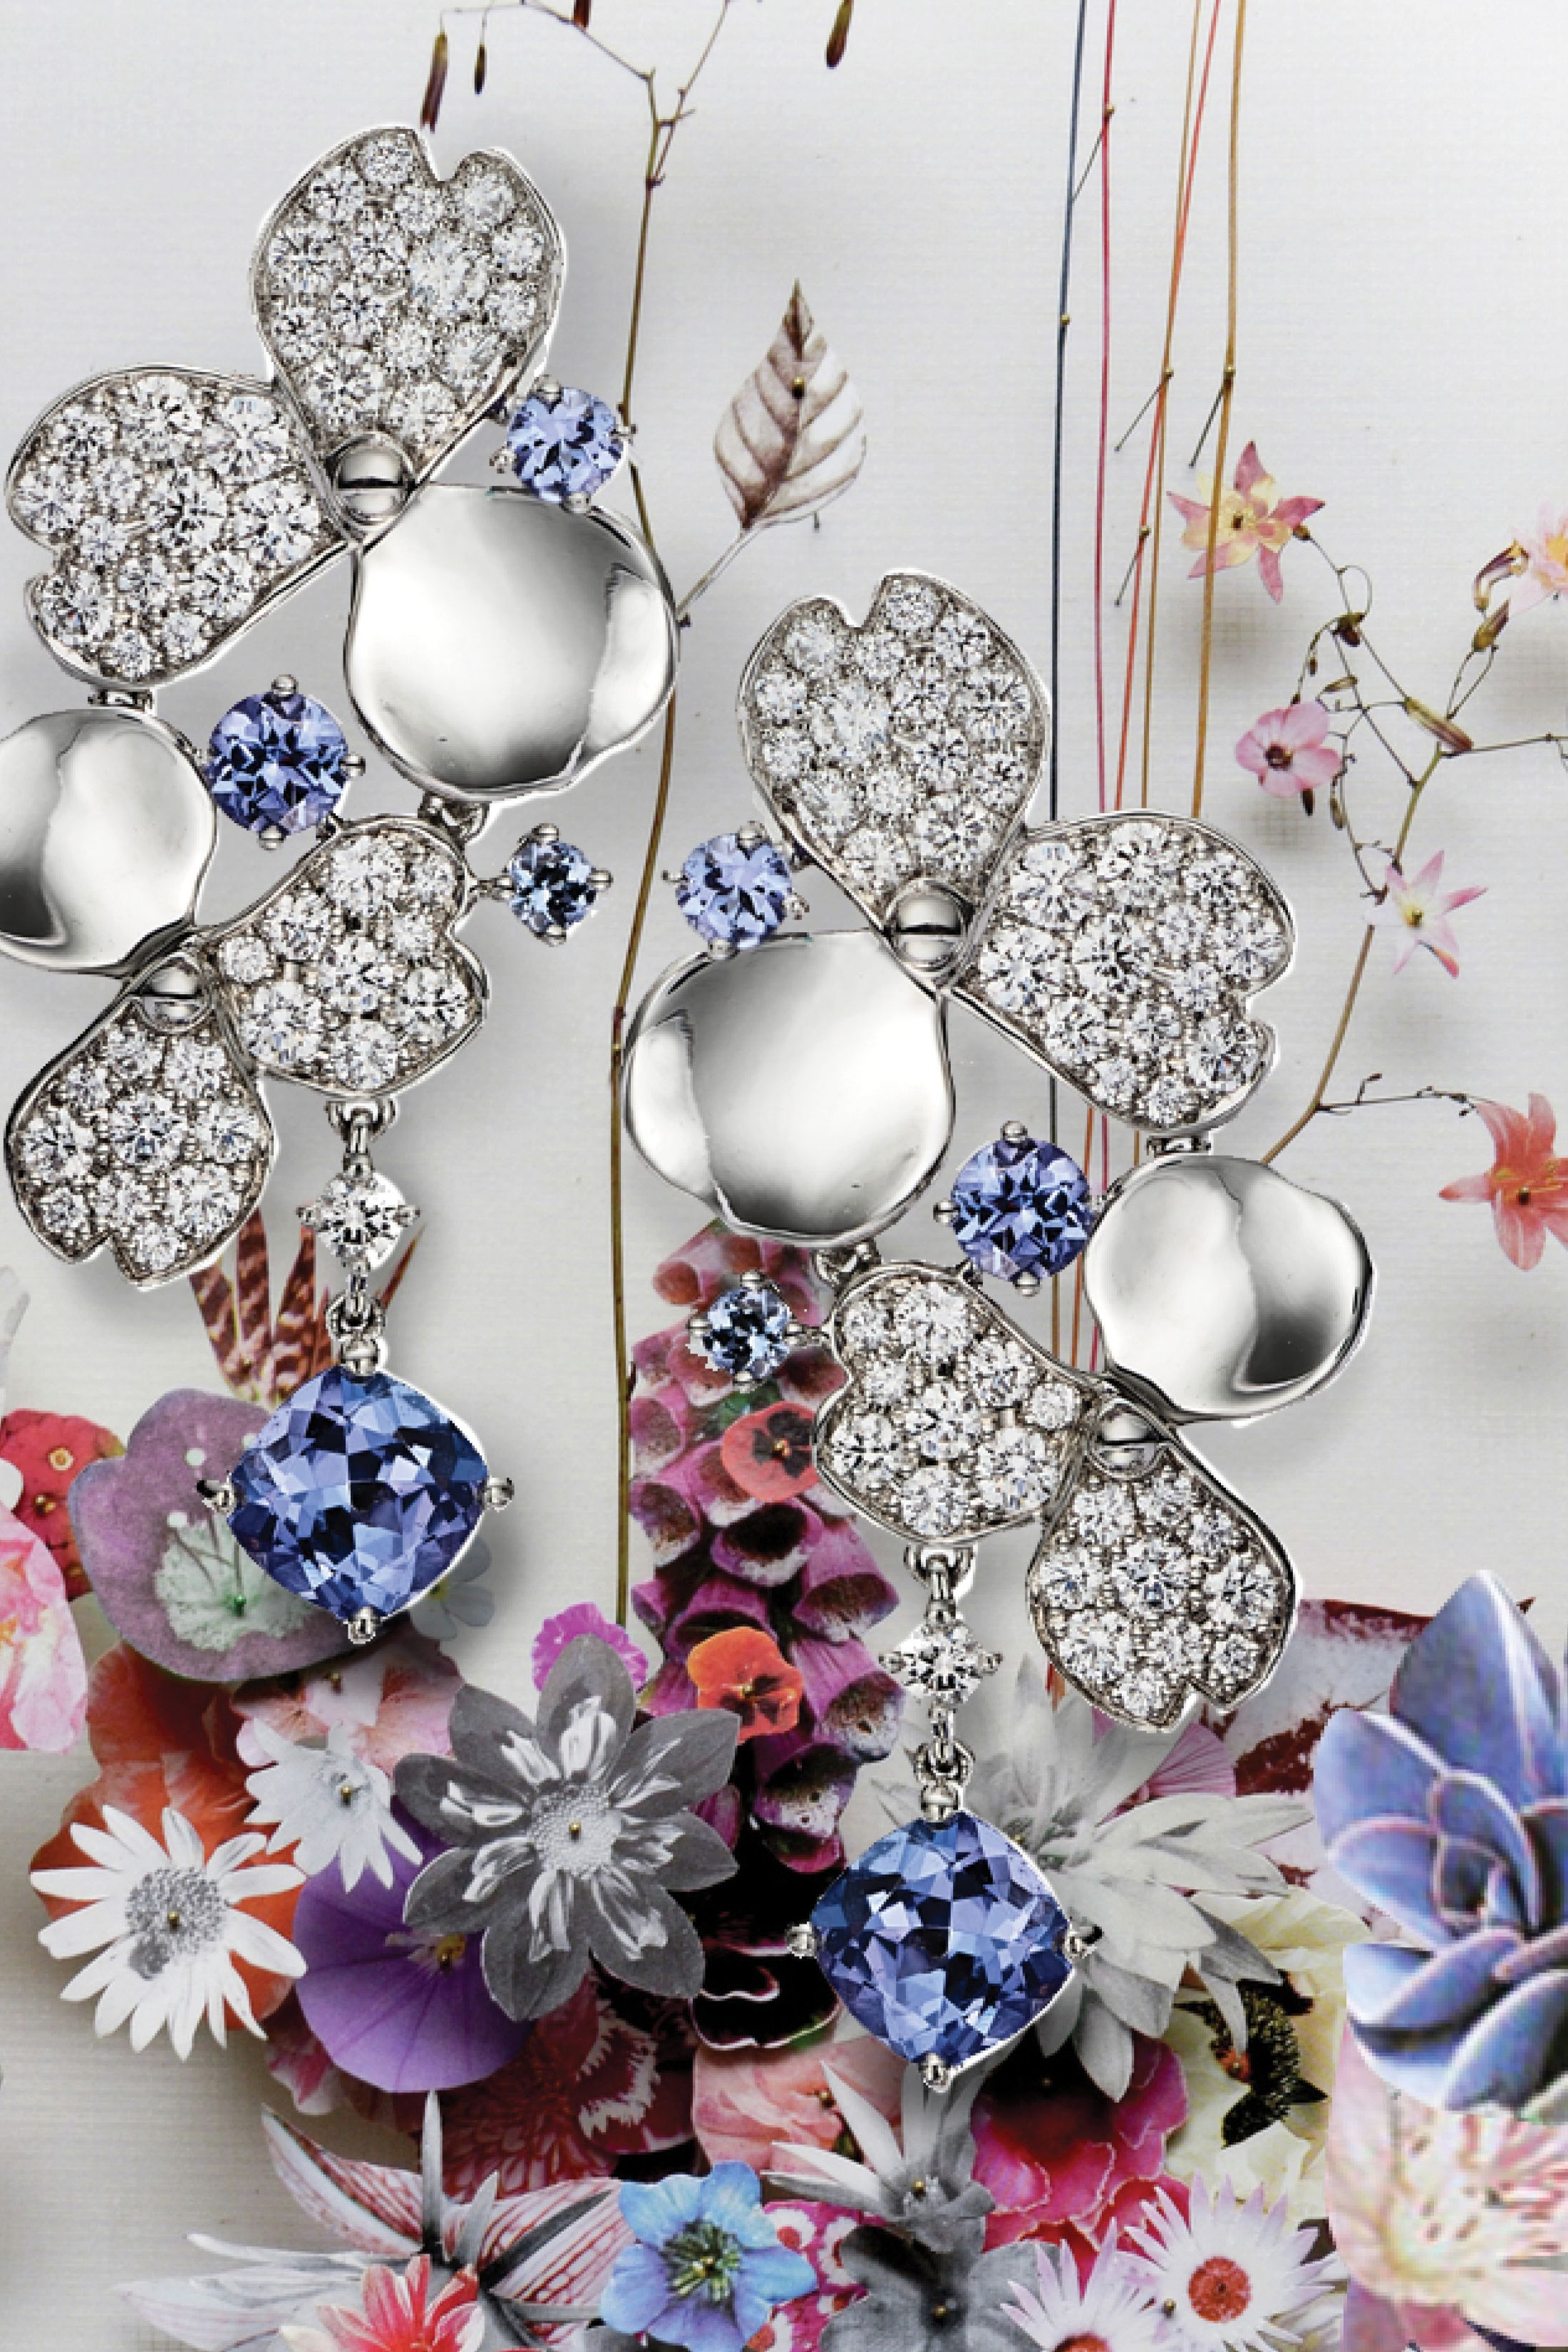 This is Tiffany flower and jewelry collage detail